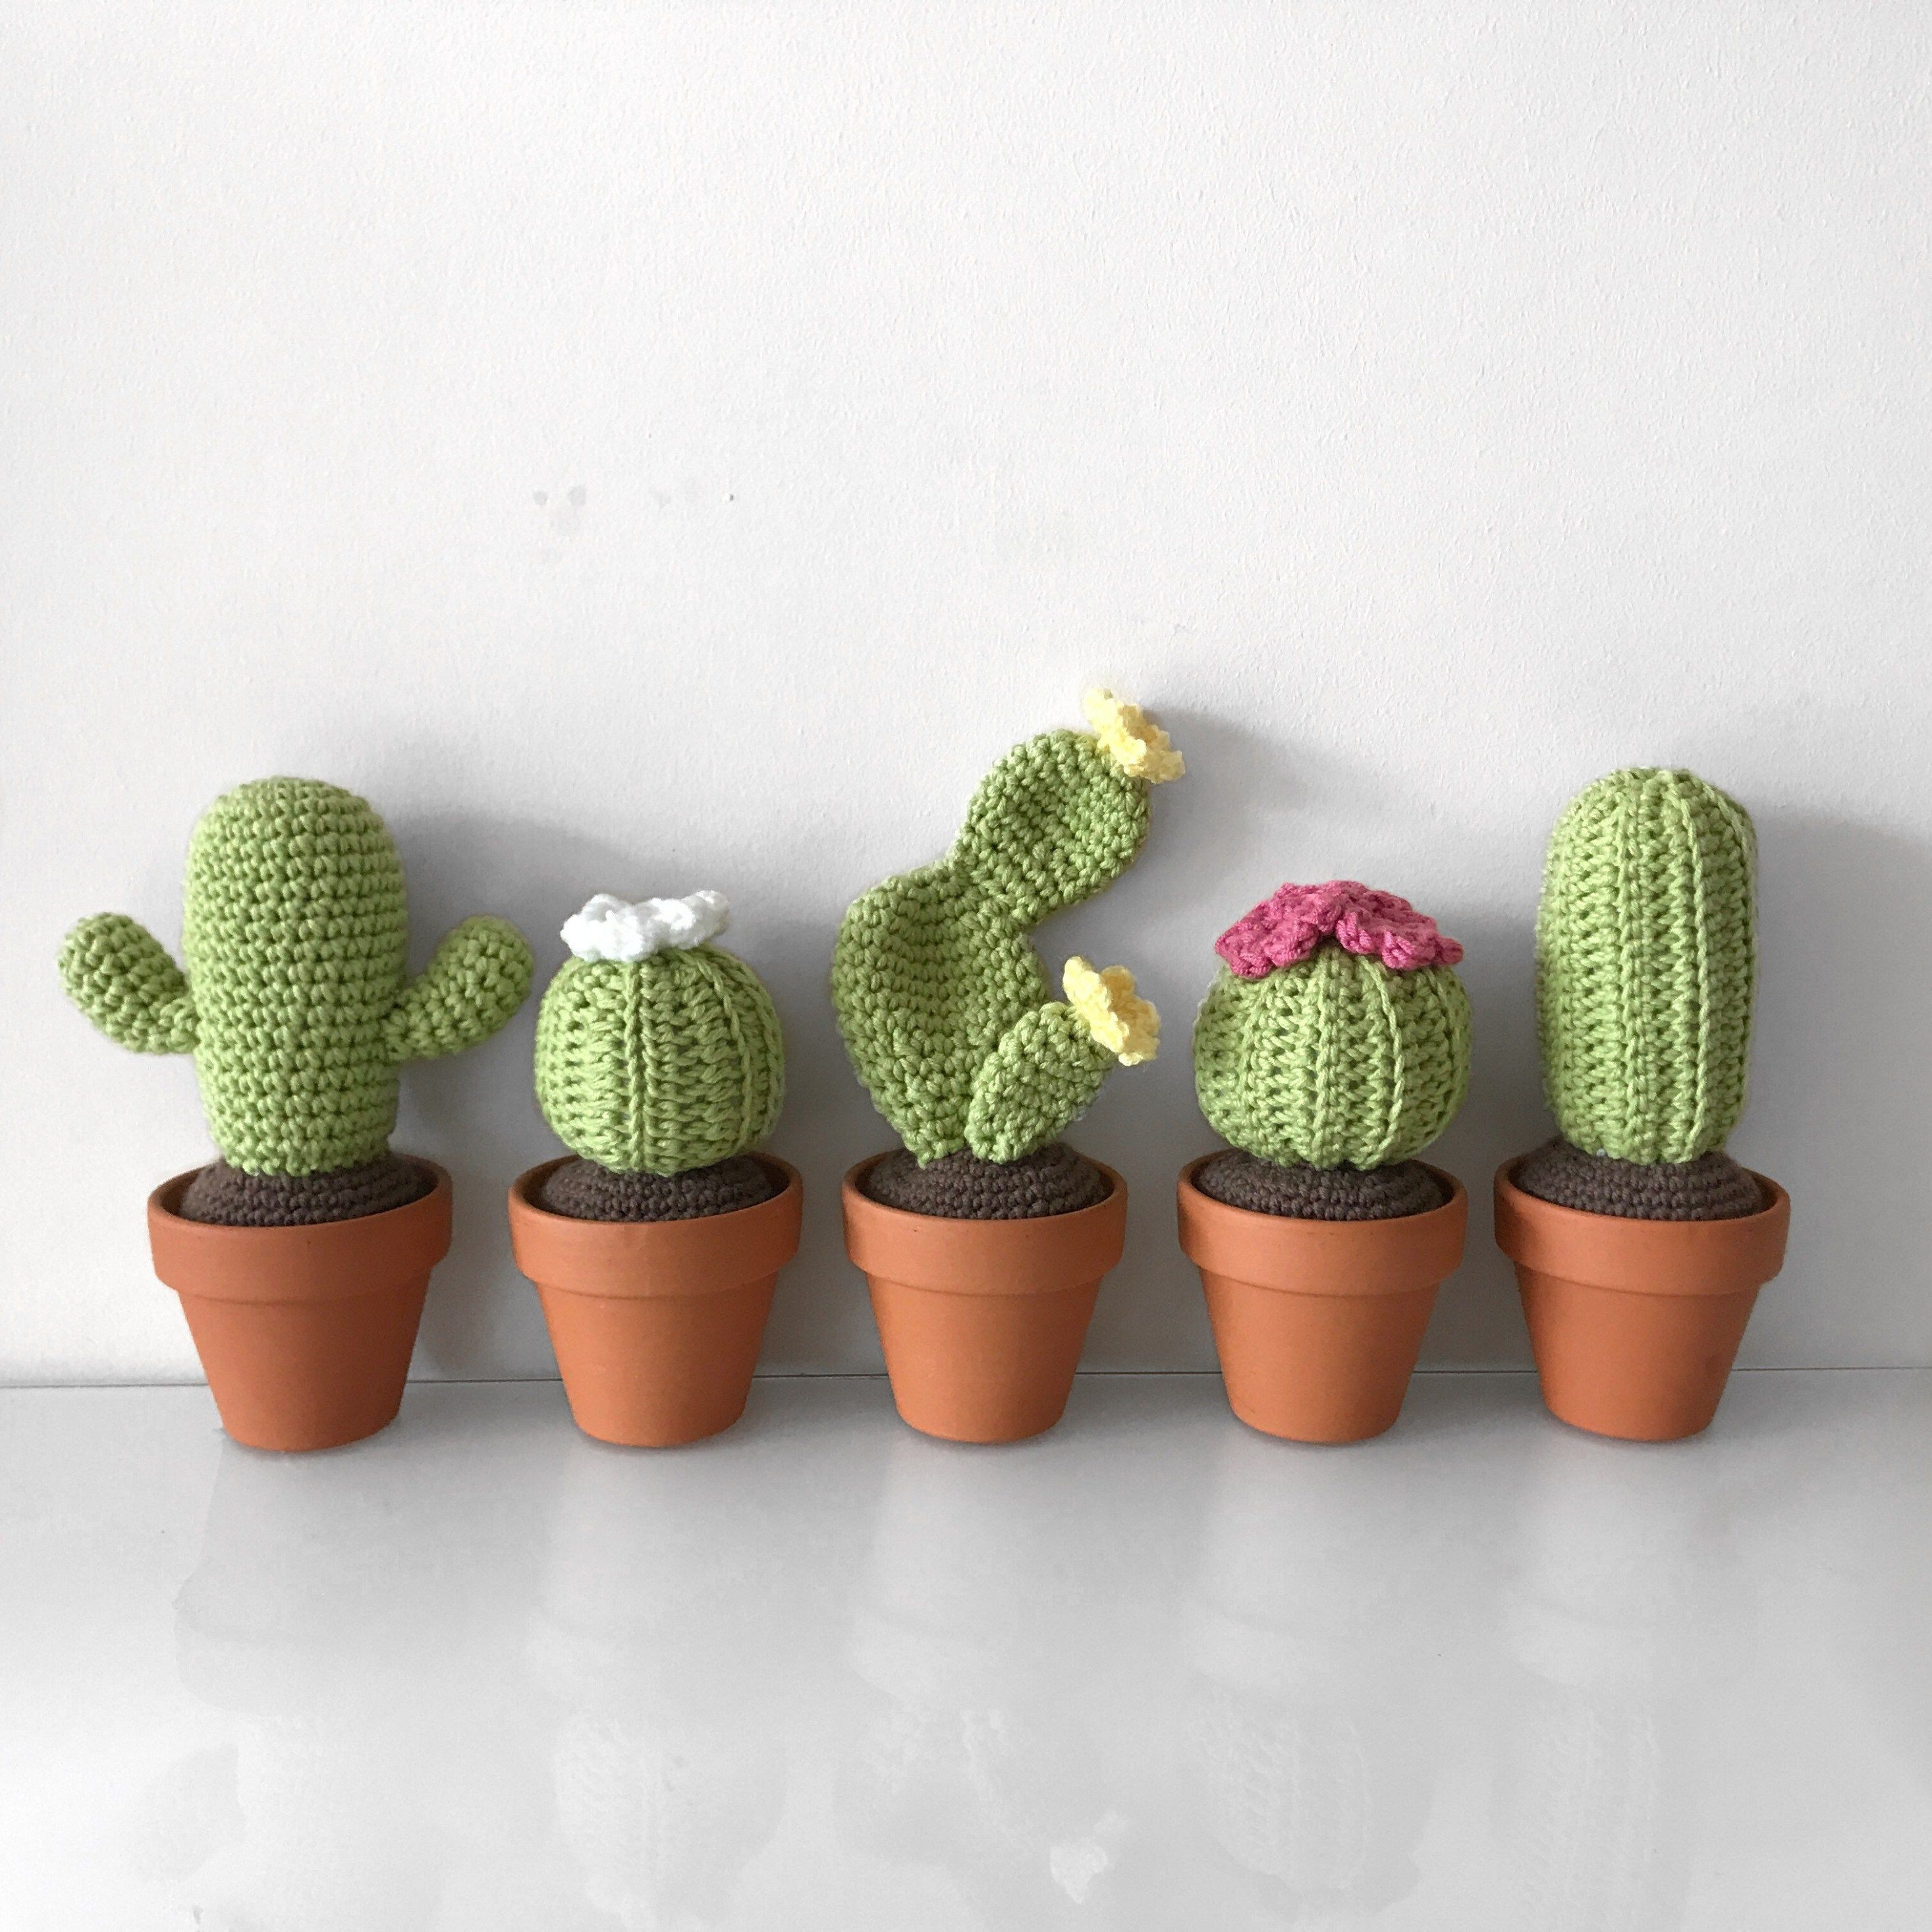 Crochet Cactus Free Pattern Awesome In This 4 Part Mini Series I Will Be Giving You 4 Detailed Of Great 40 Pictures Crochet Cactus Free Pattern